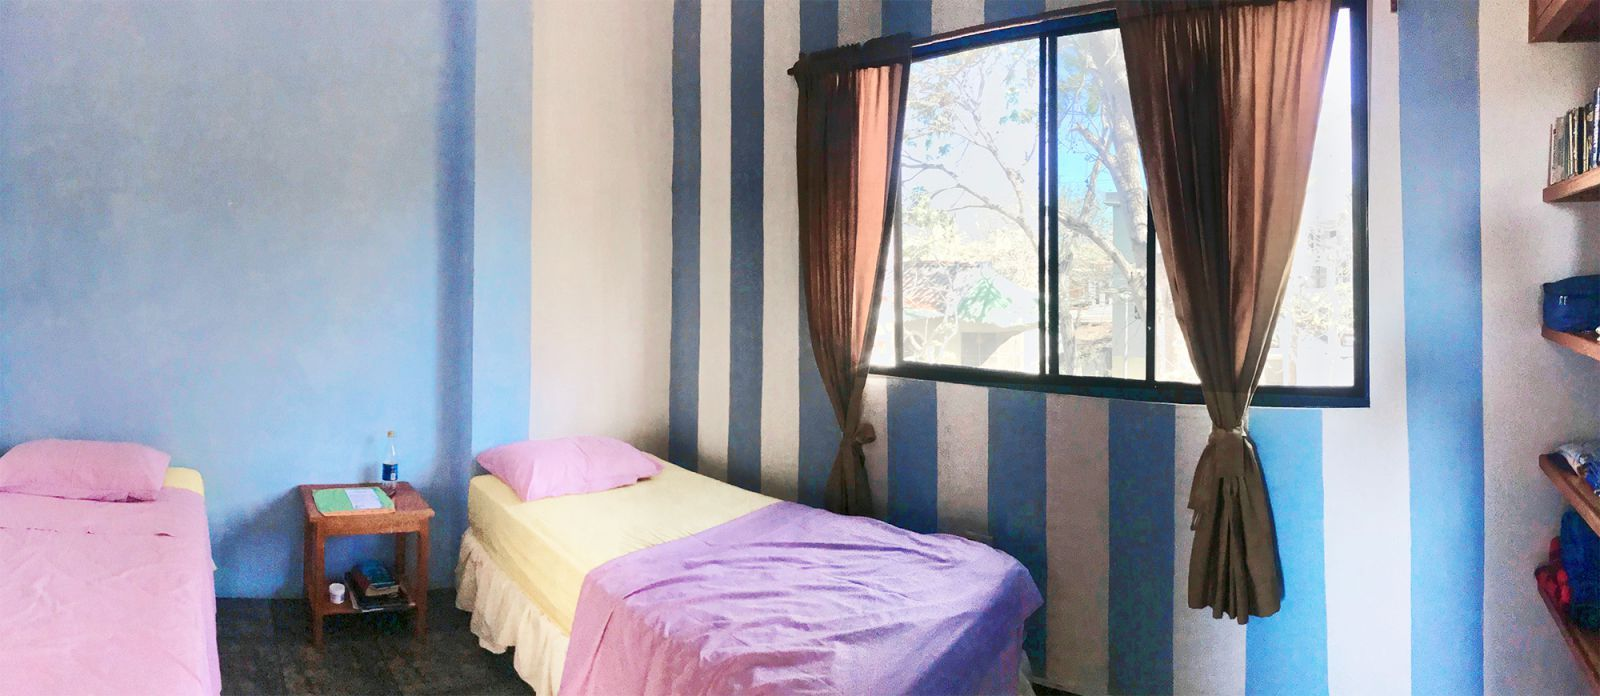 Twin room in apartment